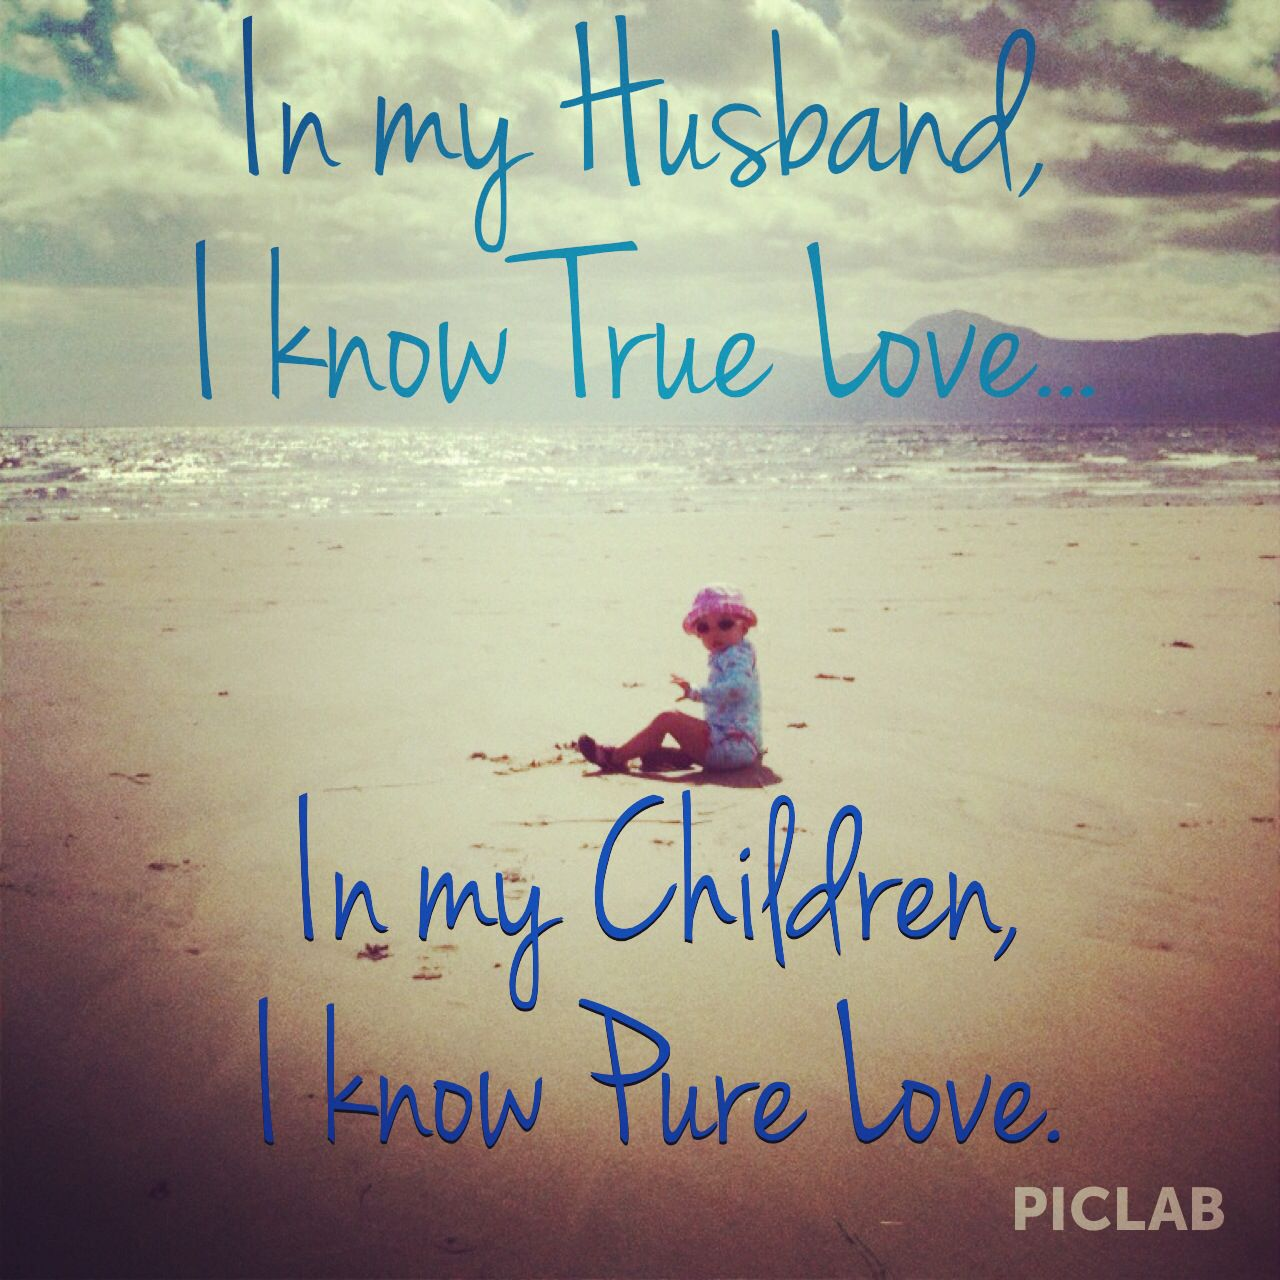 Truth love quote husband & children In my Husband I know true love In